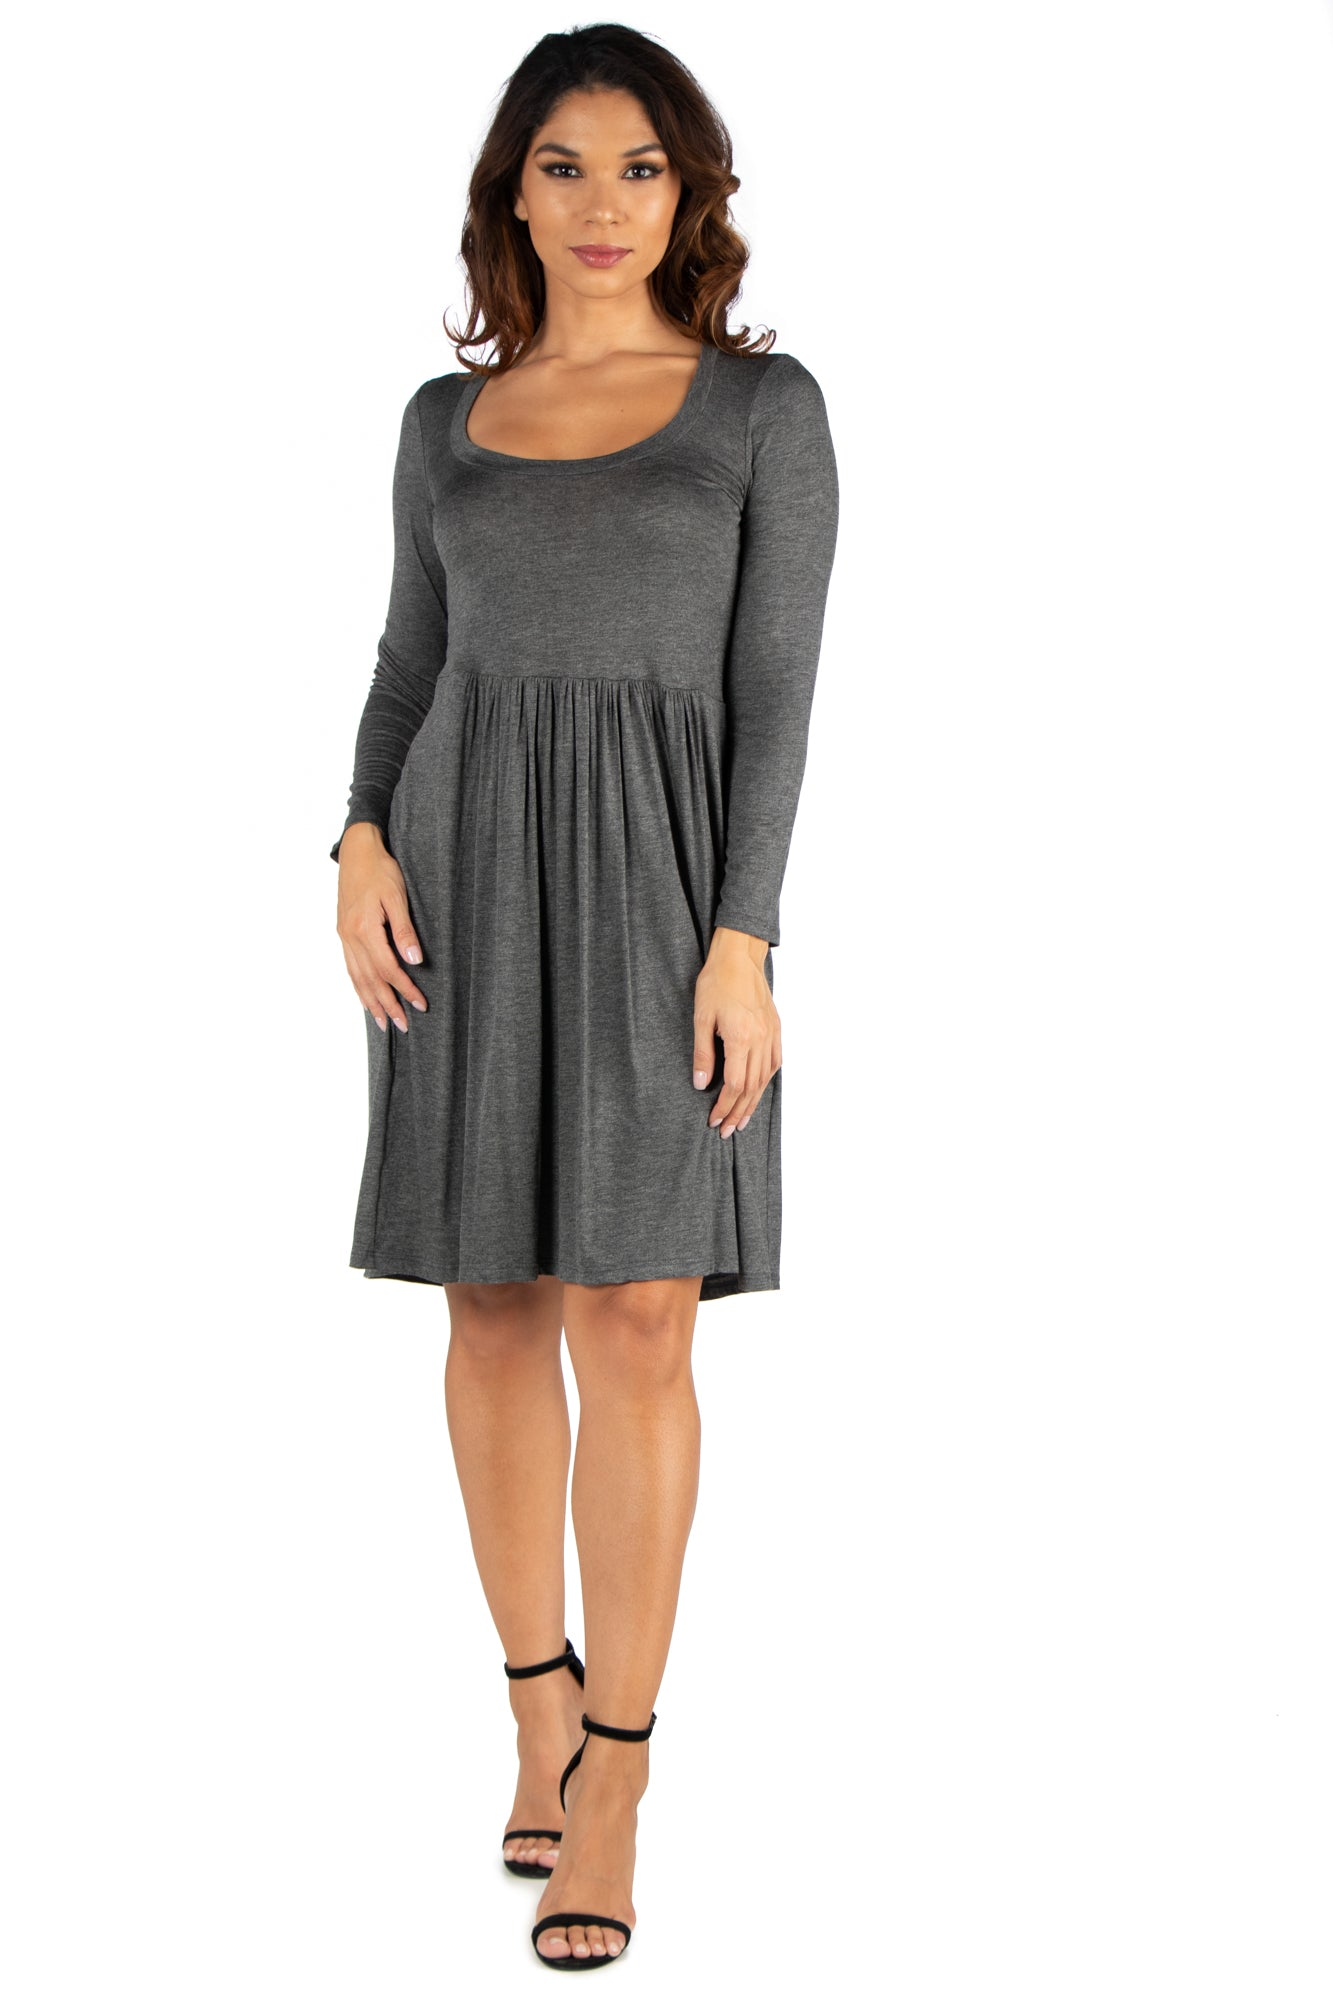 24seven Comfort Apparel Casual Long Sleeve Pleated Dress-Dresses-24Seven Comfort Apparel-GREY-S-24/7 Comfort Apparel